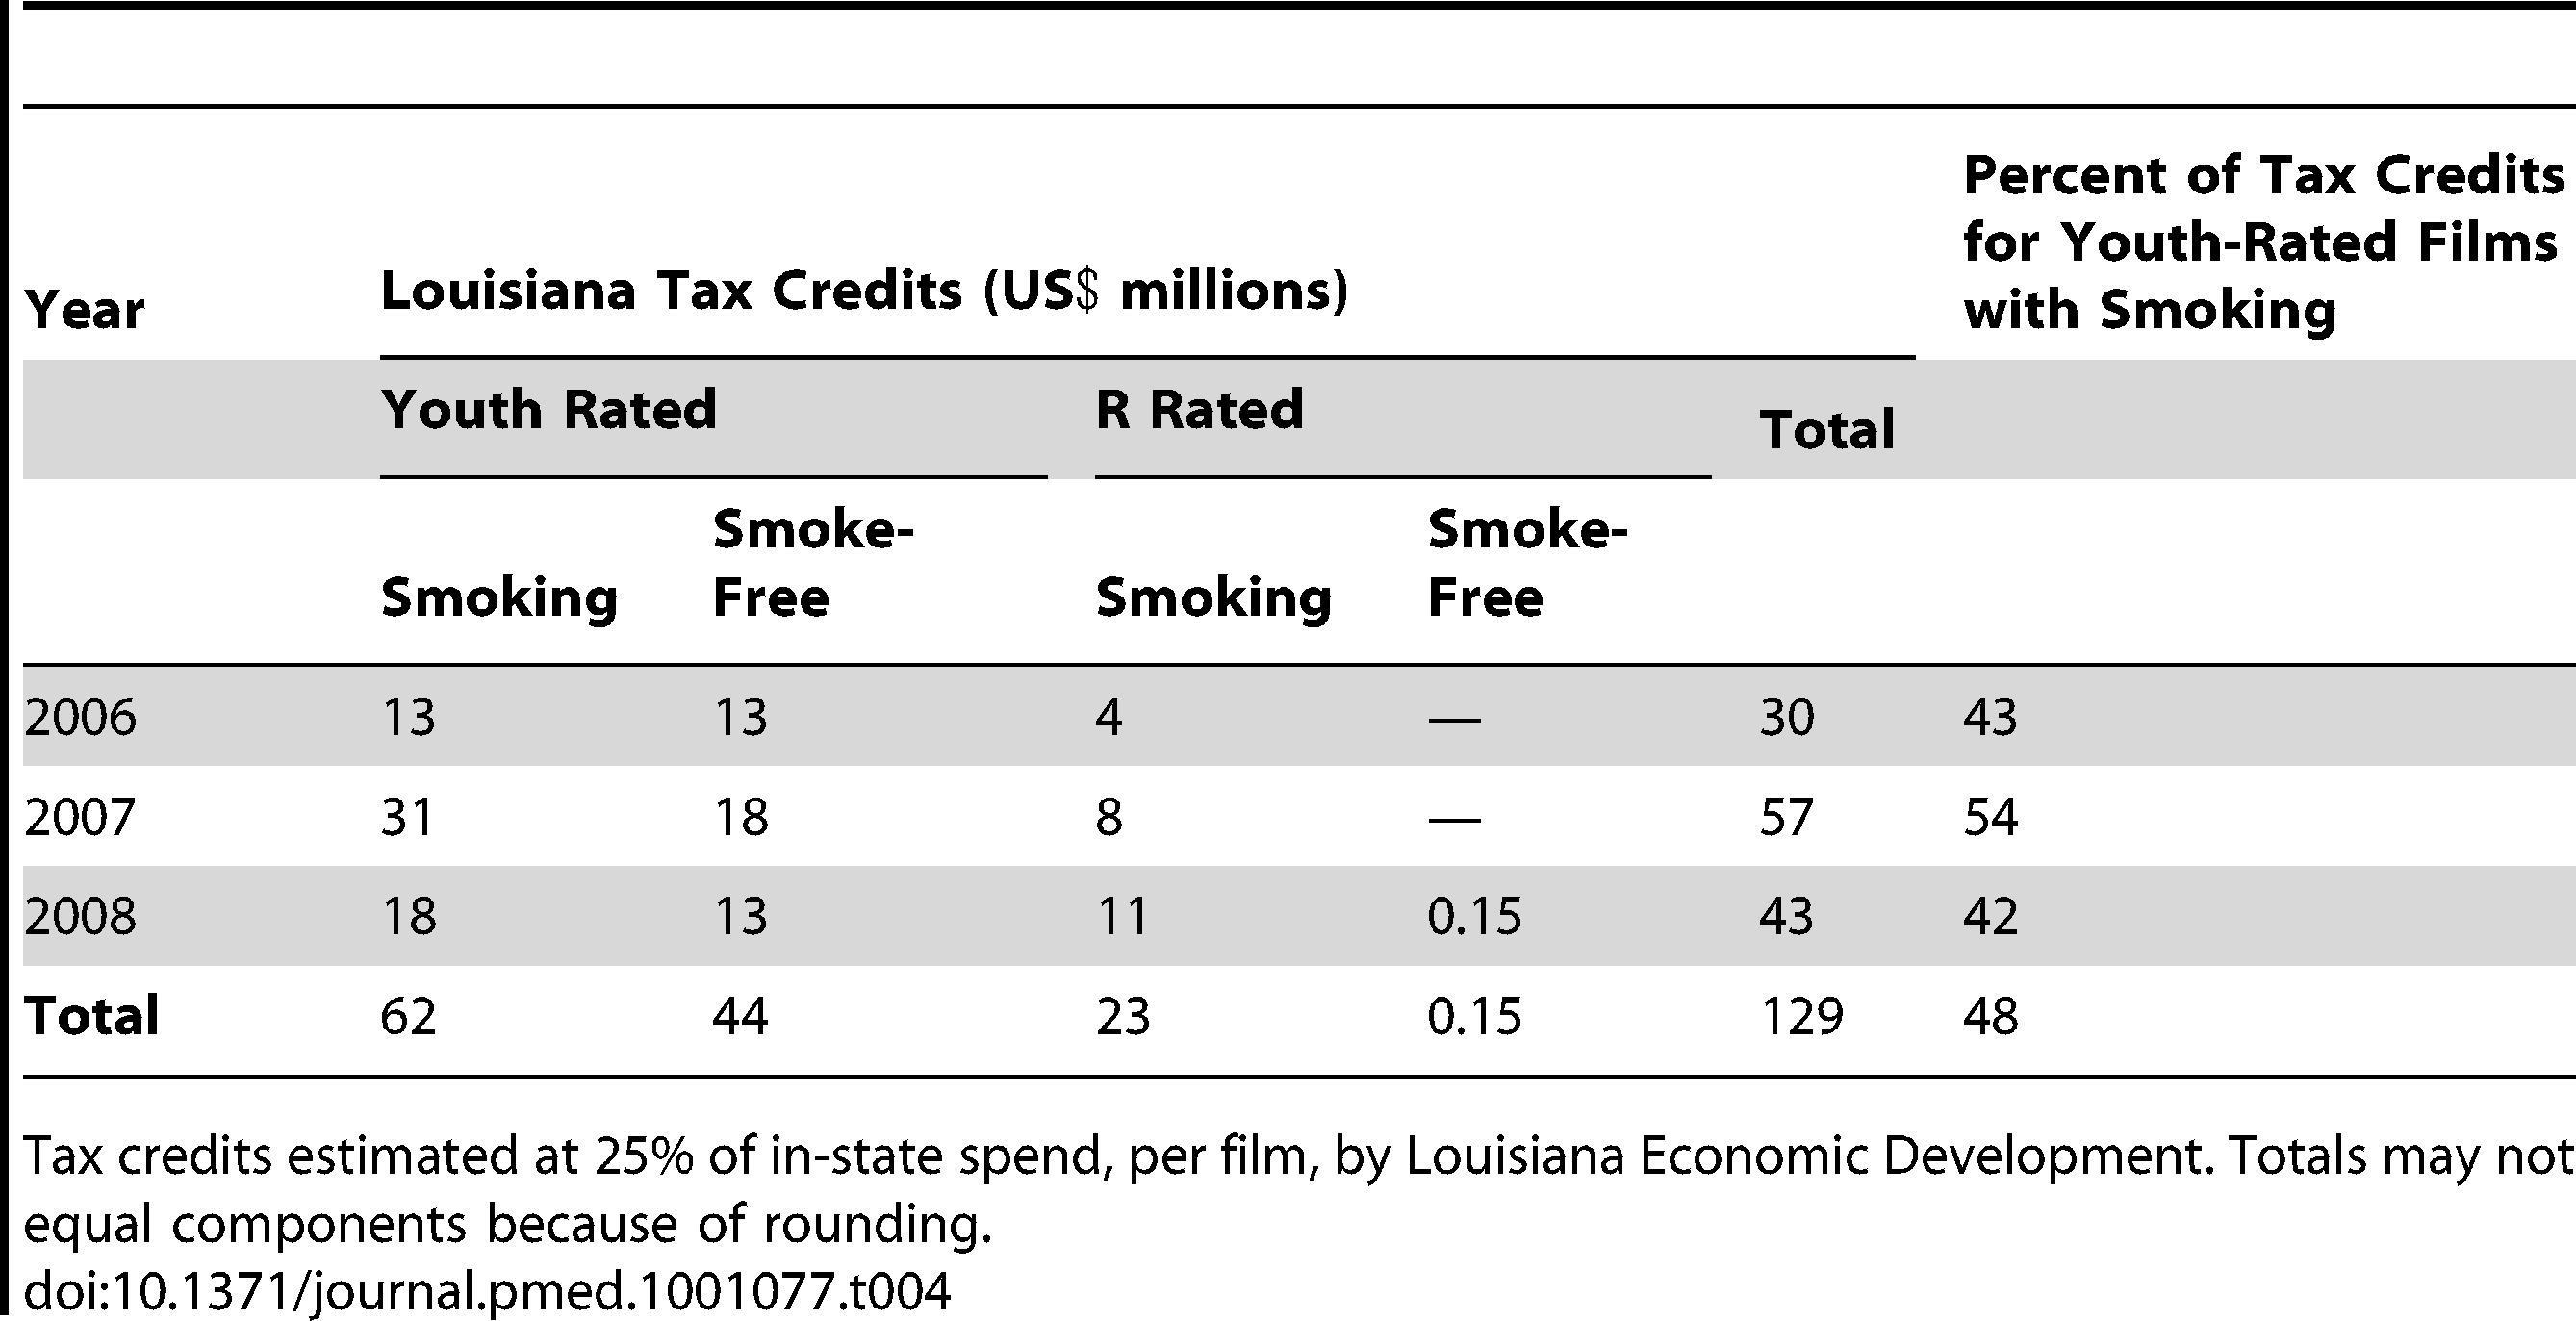 Louisiana (US) tax credits for wide-release films, by rating and tobacco imagery, 2006–2008.